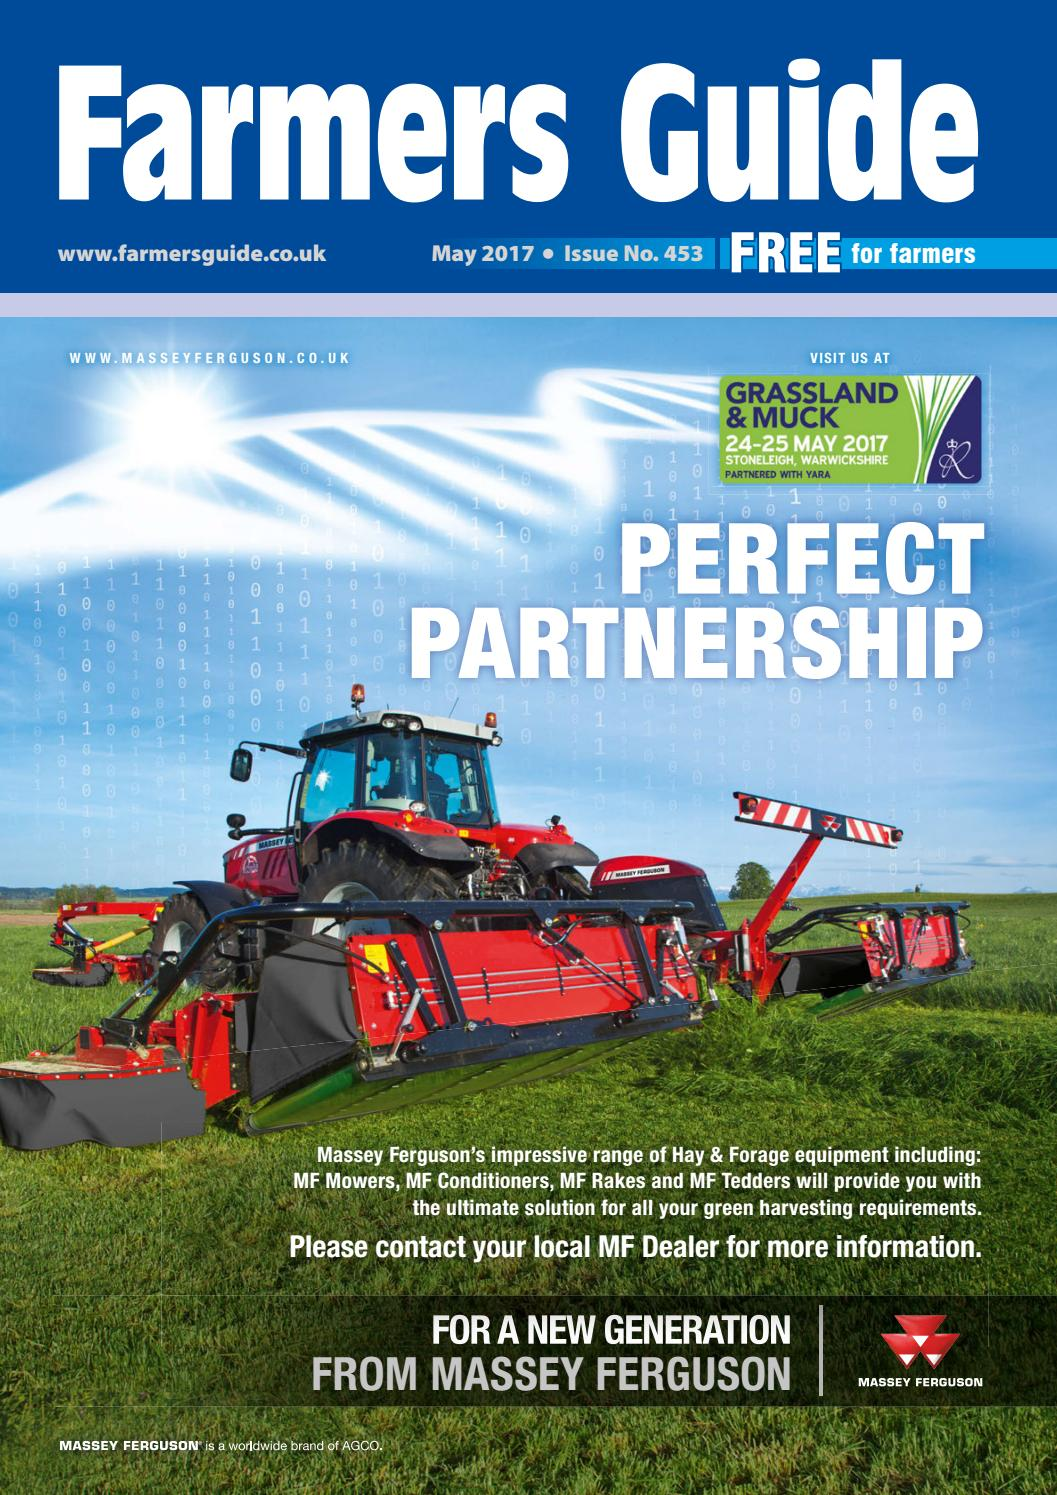 77bbf2eeb Farmers Guide May 2017 by Farmers Guide - issuu